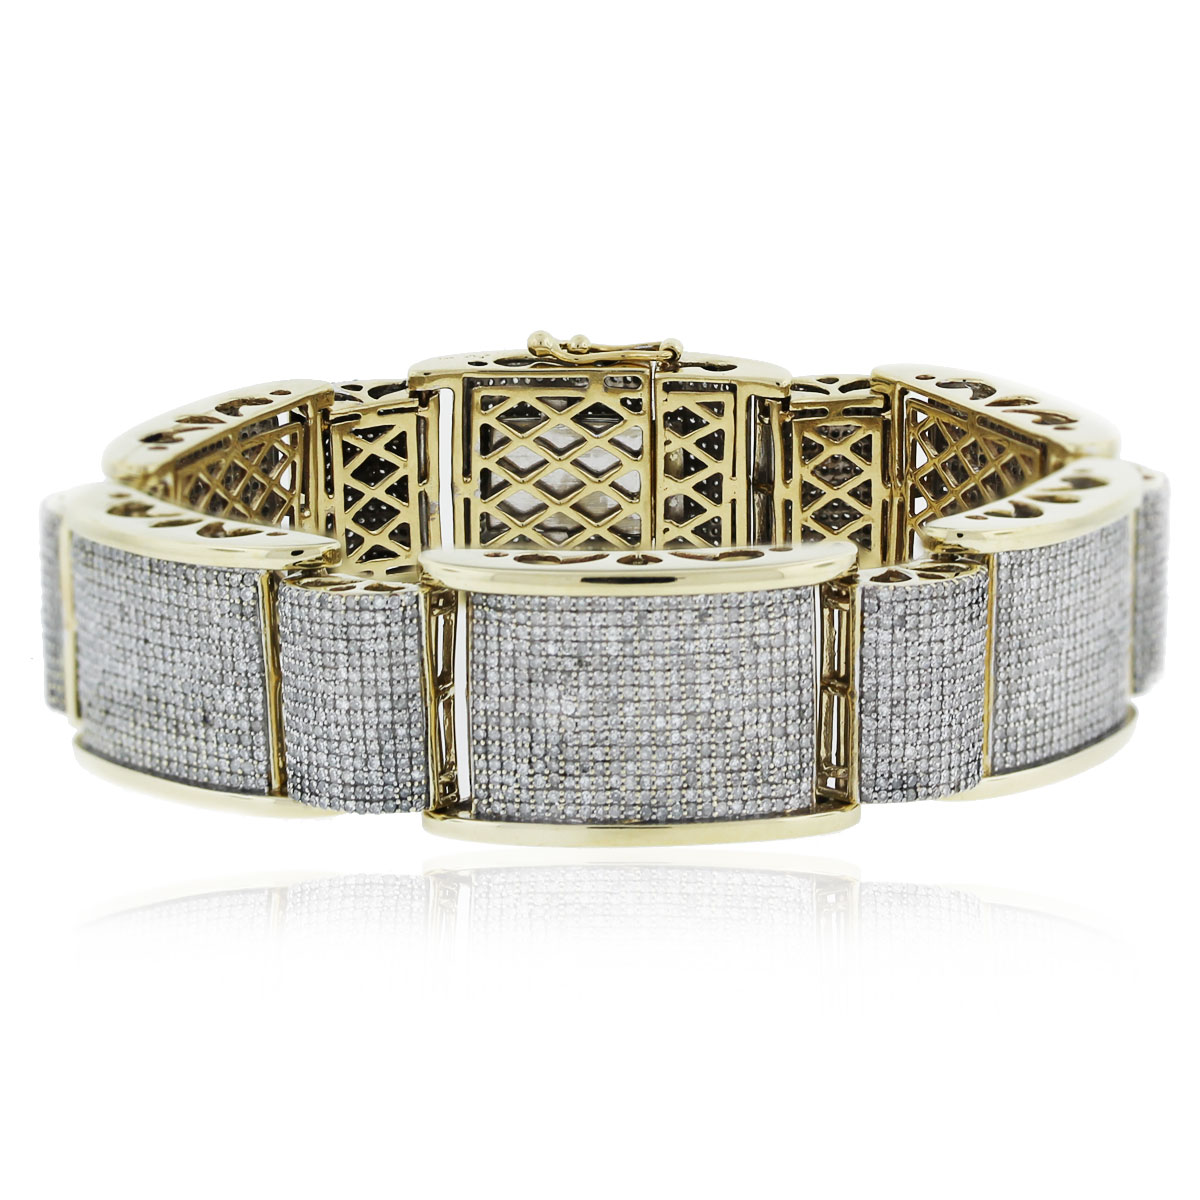 10k Yellow Gold Round Cut Diamond Pave Thick Link Men's Bracelet